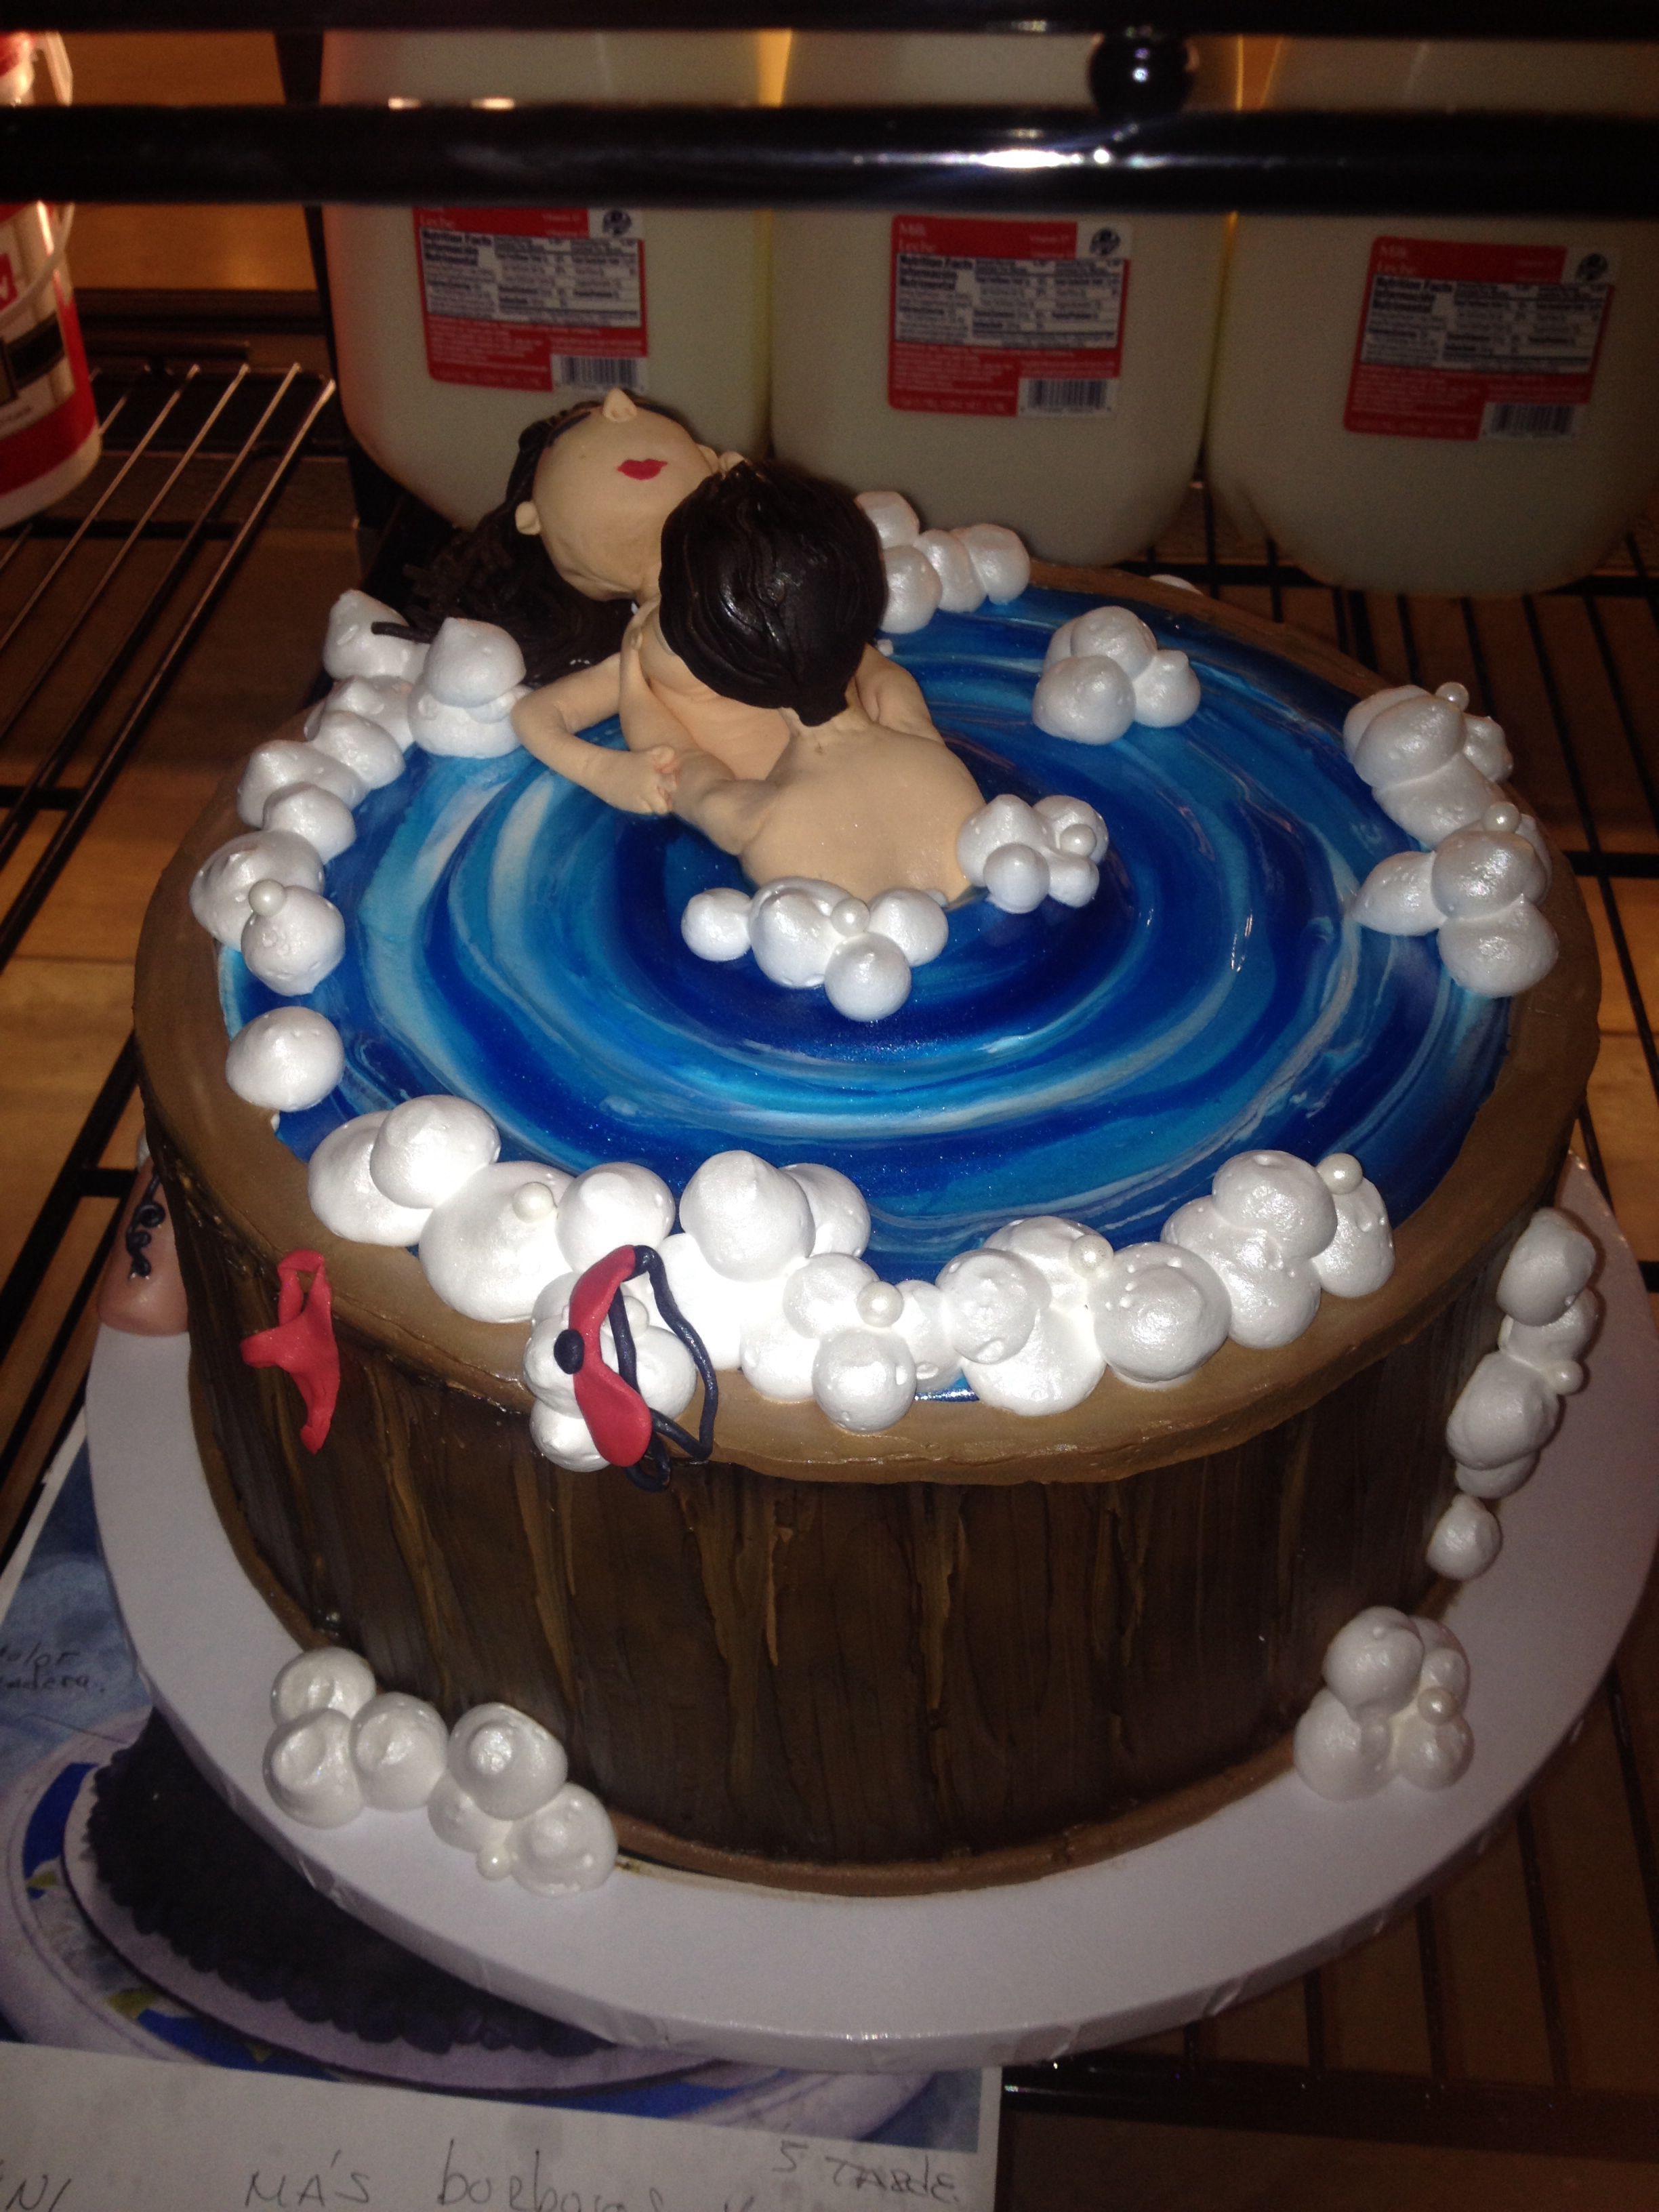 Hot Tub Cake With The Man And A Woman Steaming It Up Just